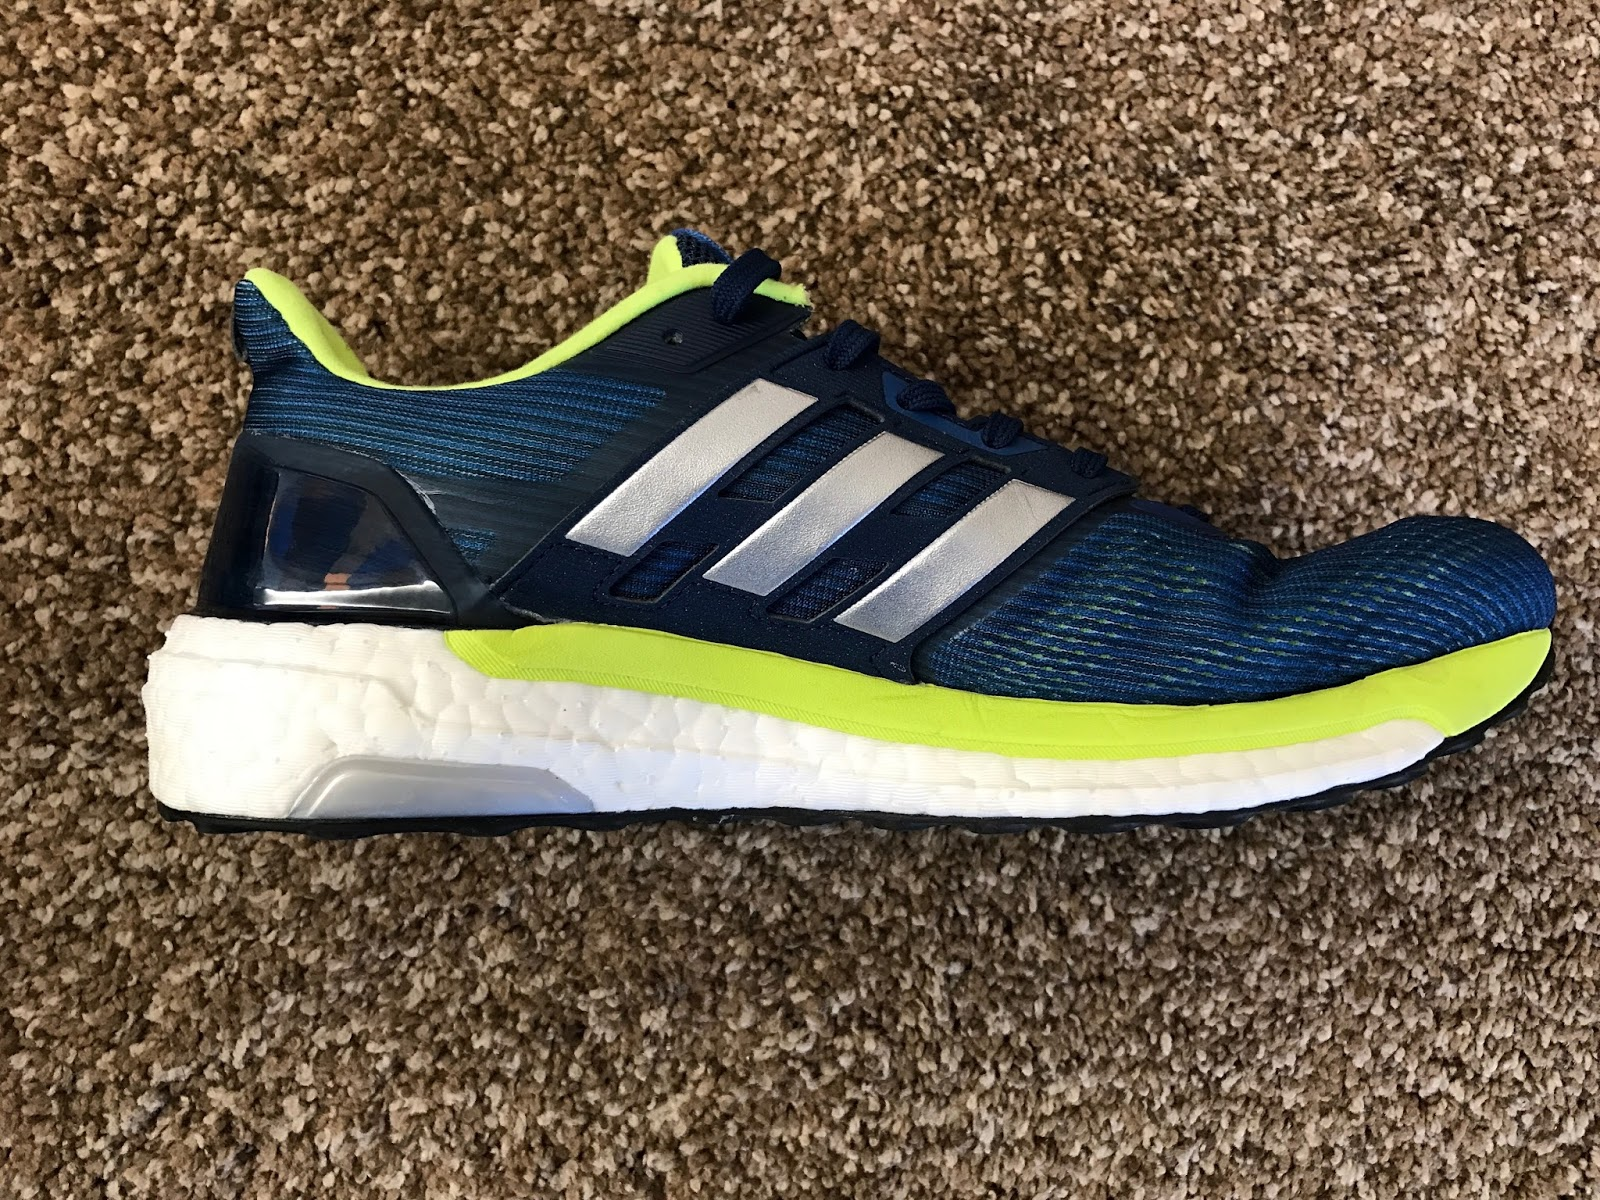 a5def8dbde1bc Road Trail Run  adidas Supernova Glide 9 Review  Rebounding